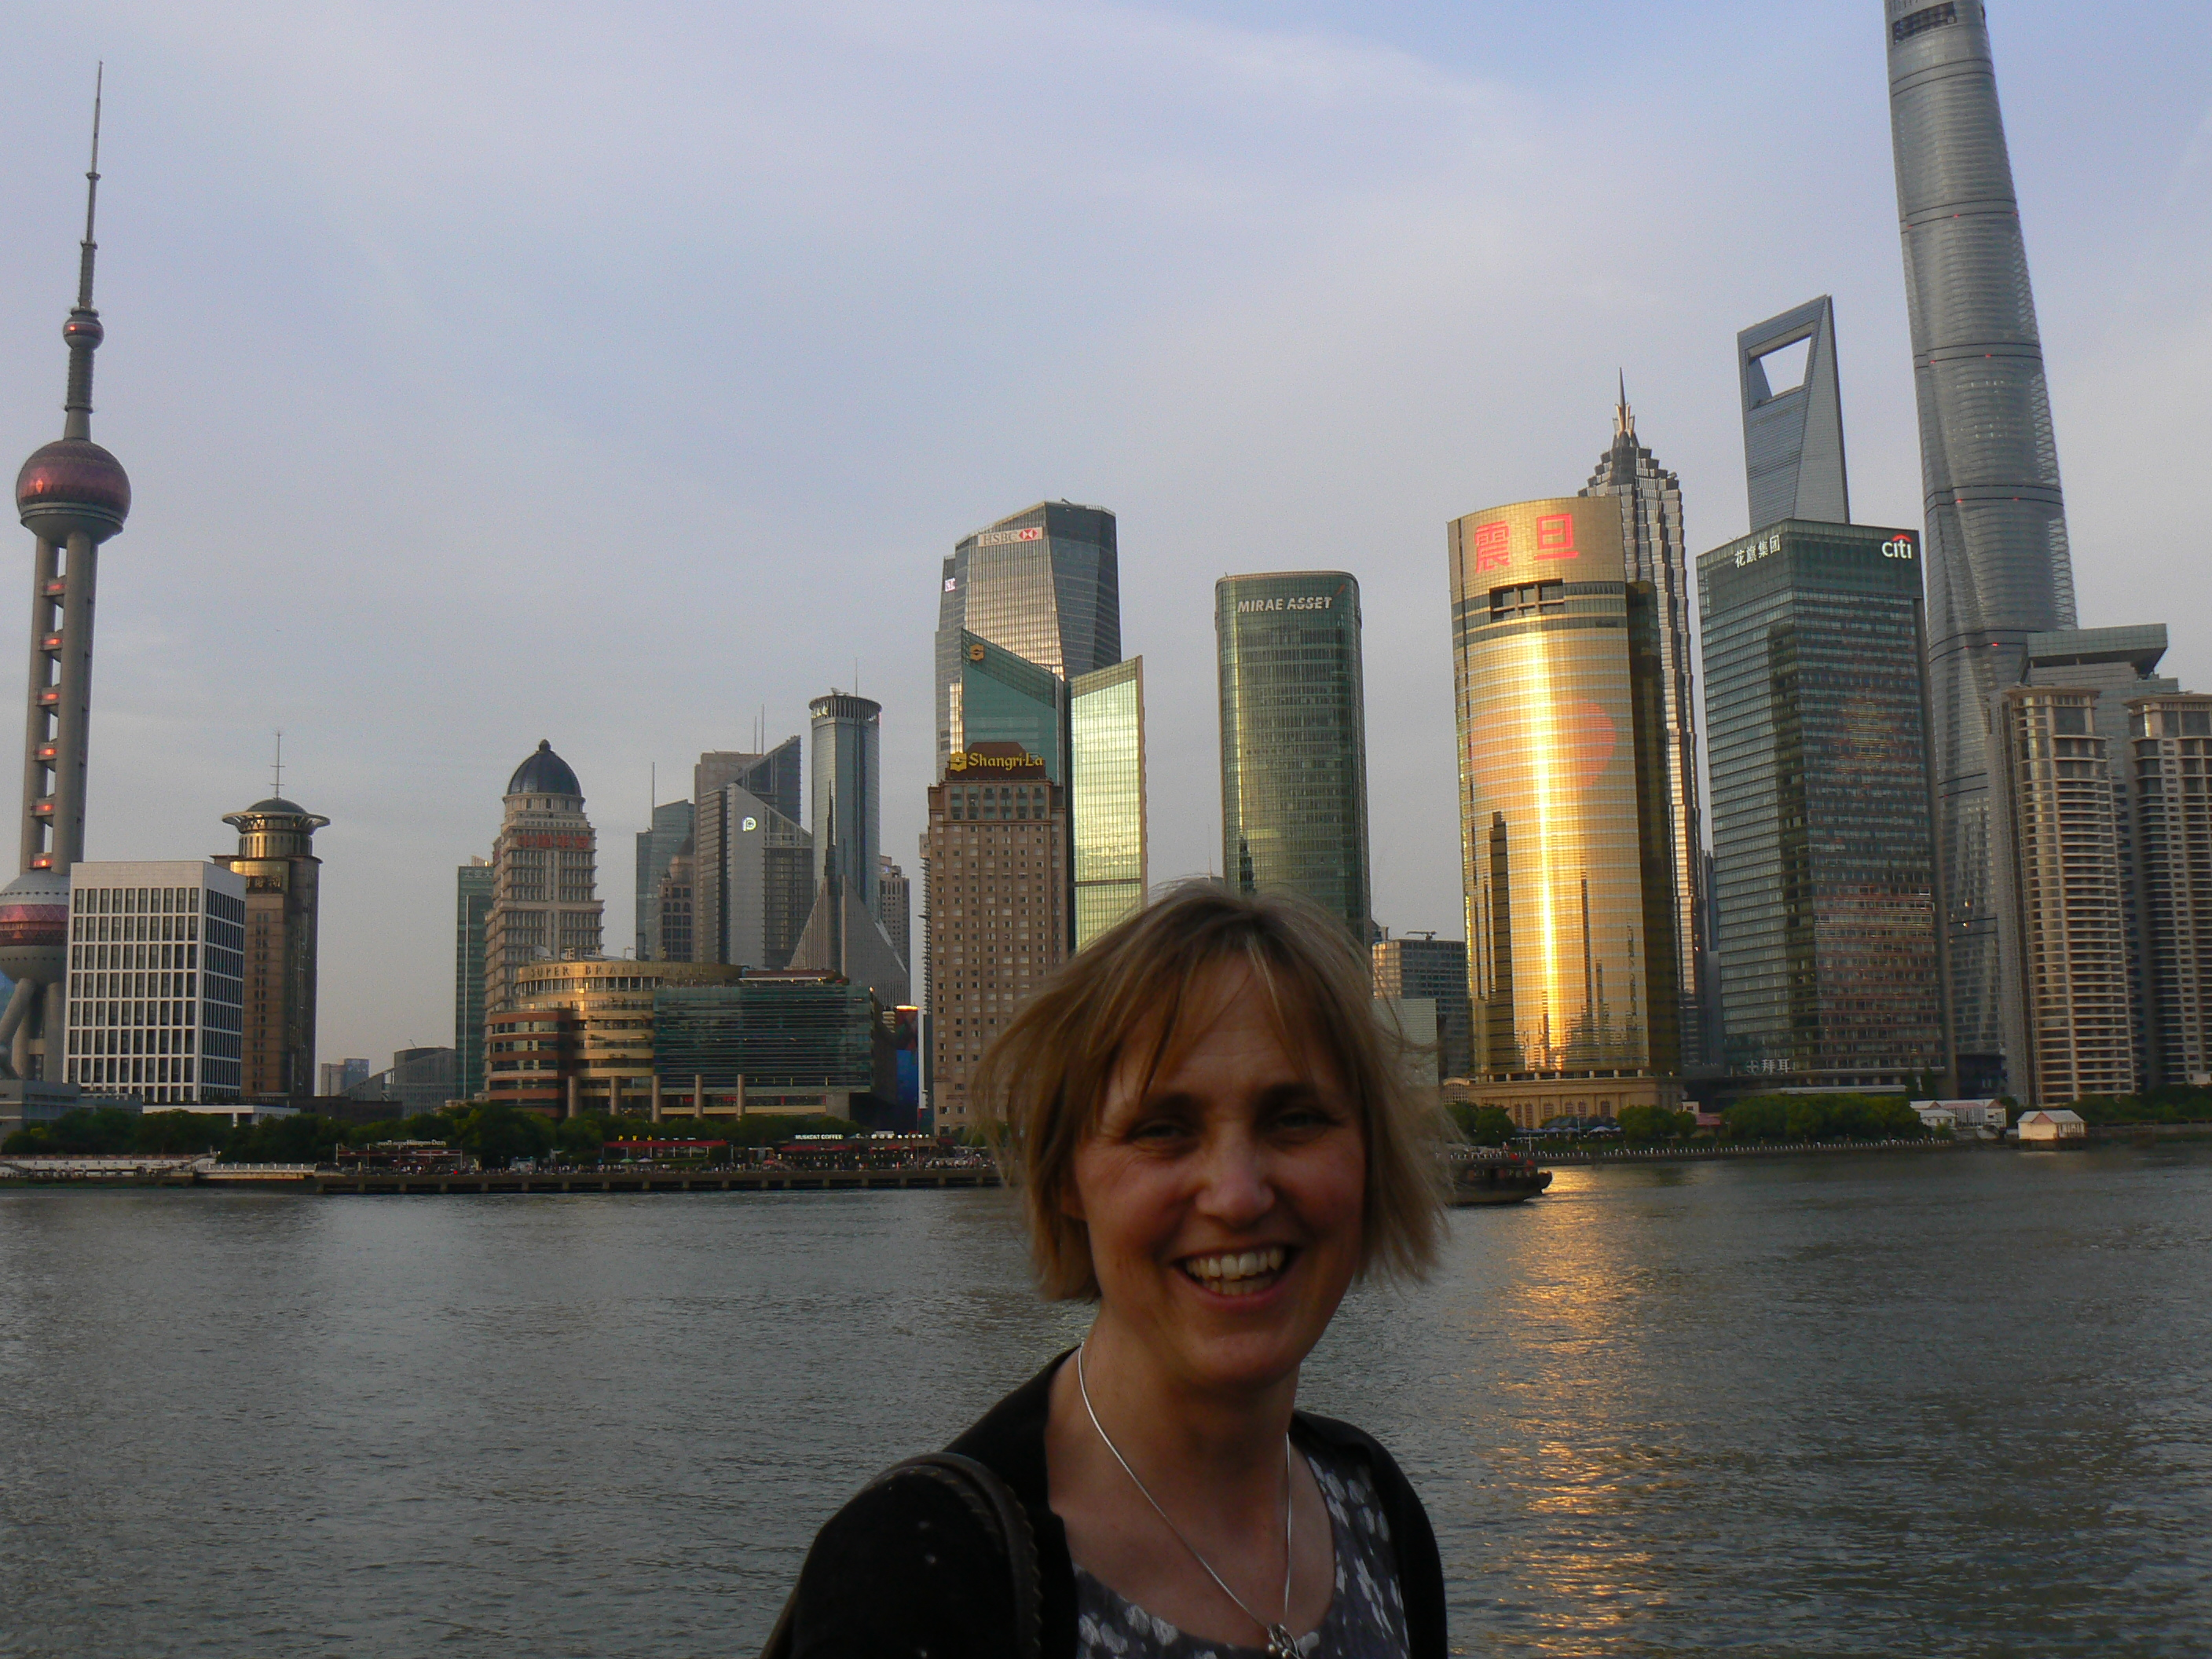 Liz Smedley on the Bund in Shanghai